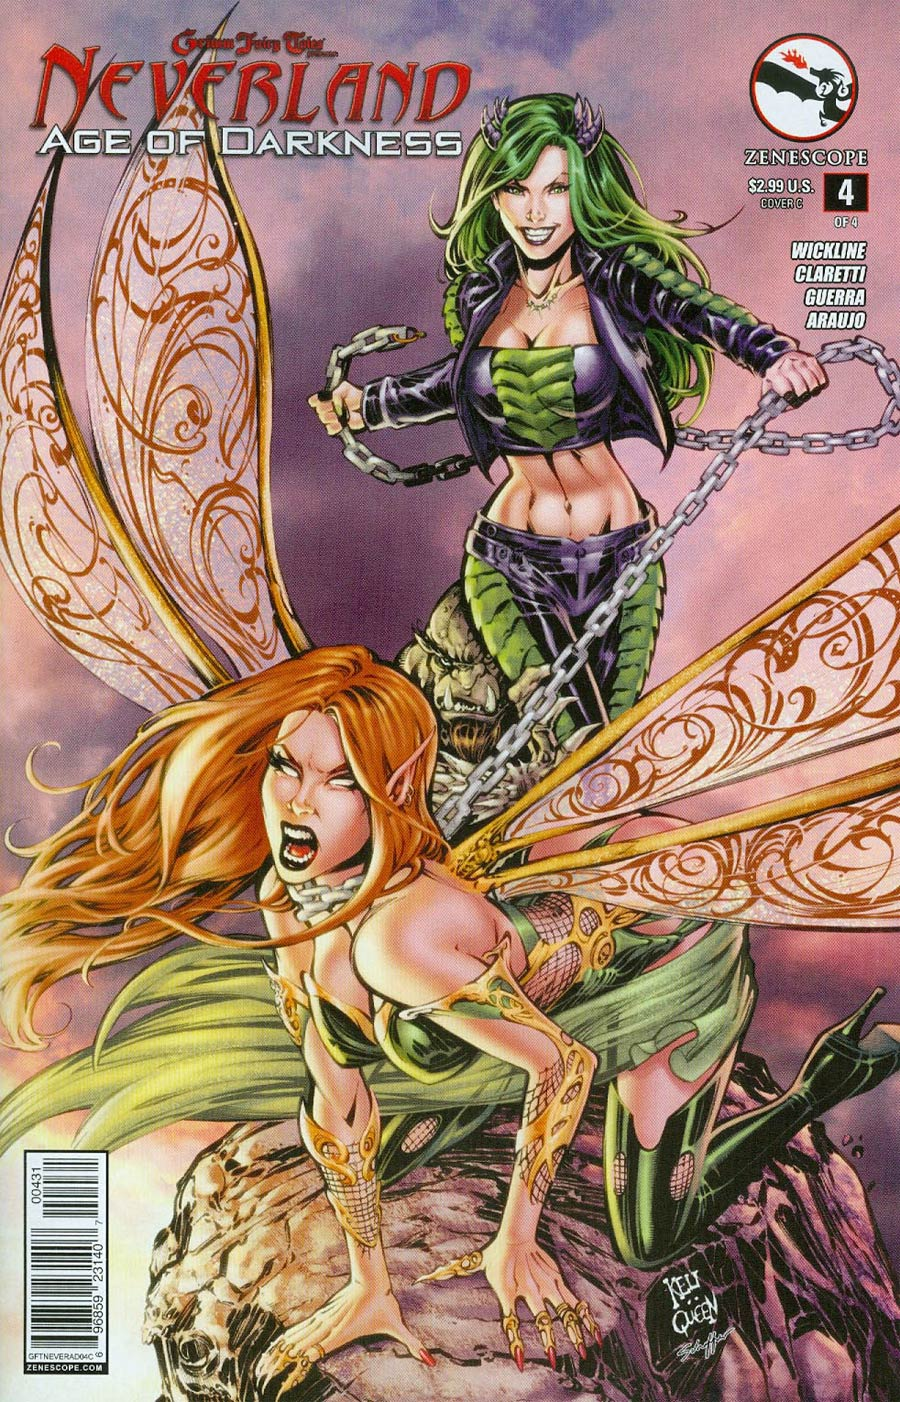 Grimm Fairy Tales Presents Neverland Age Of Darkness #4 Cover C Keu Cha